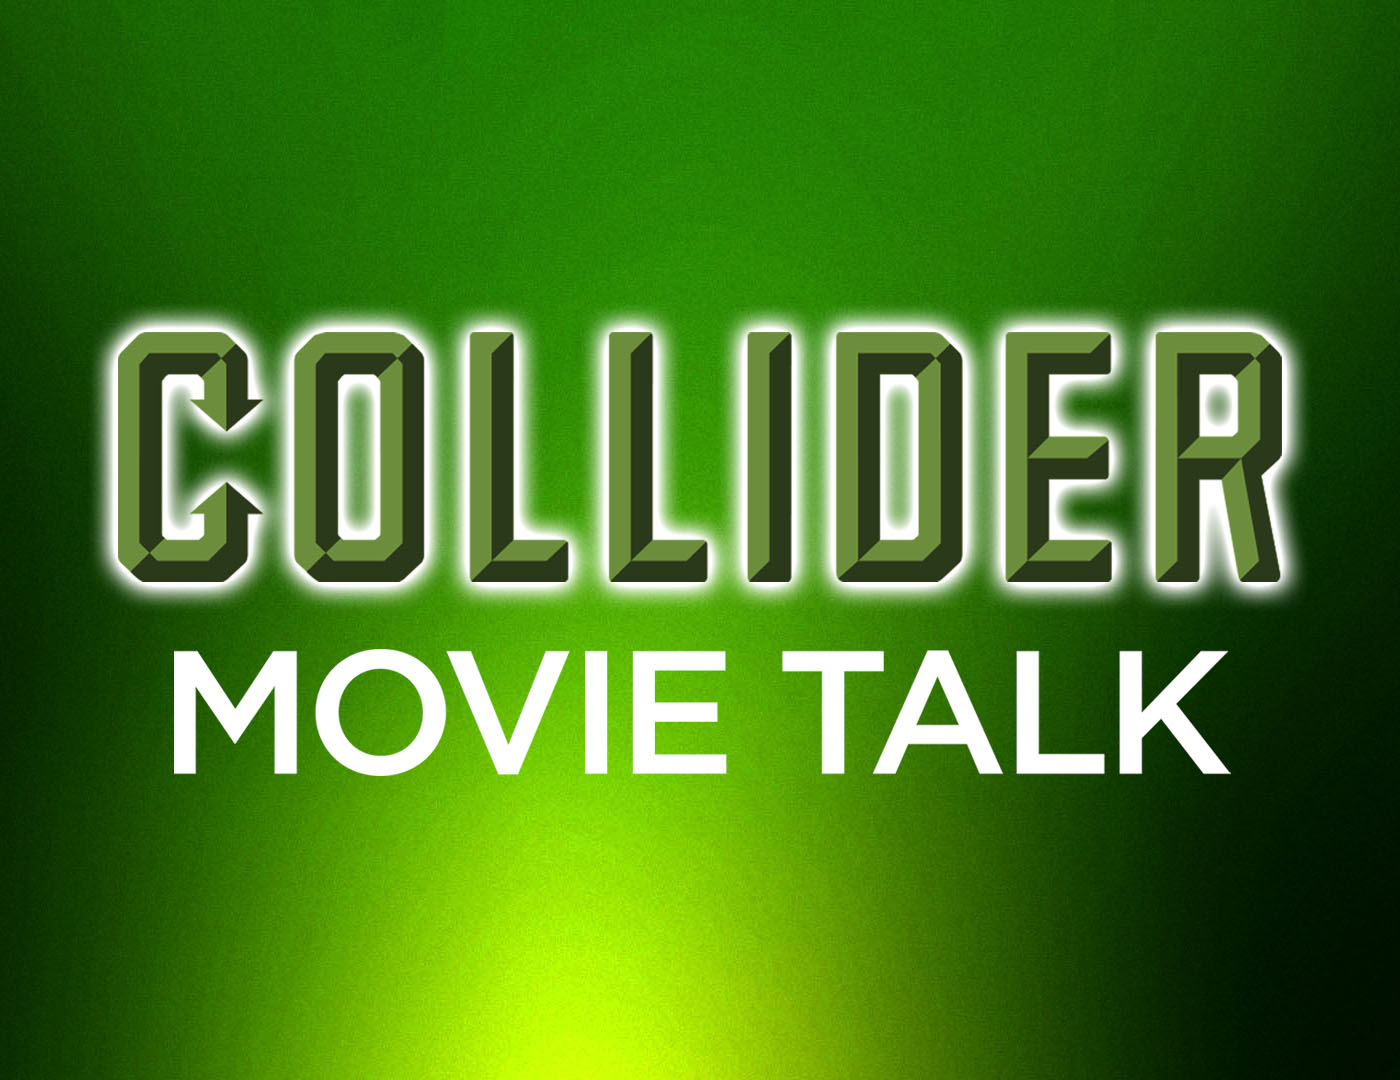 Collider Movie Talk - Alien: Paradise Lost Is The Official Prometheus 2 Title